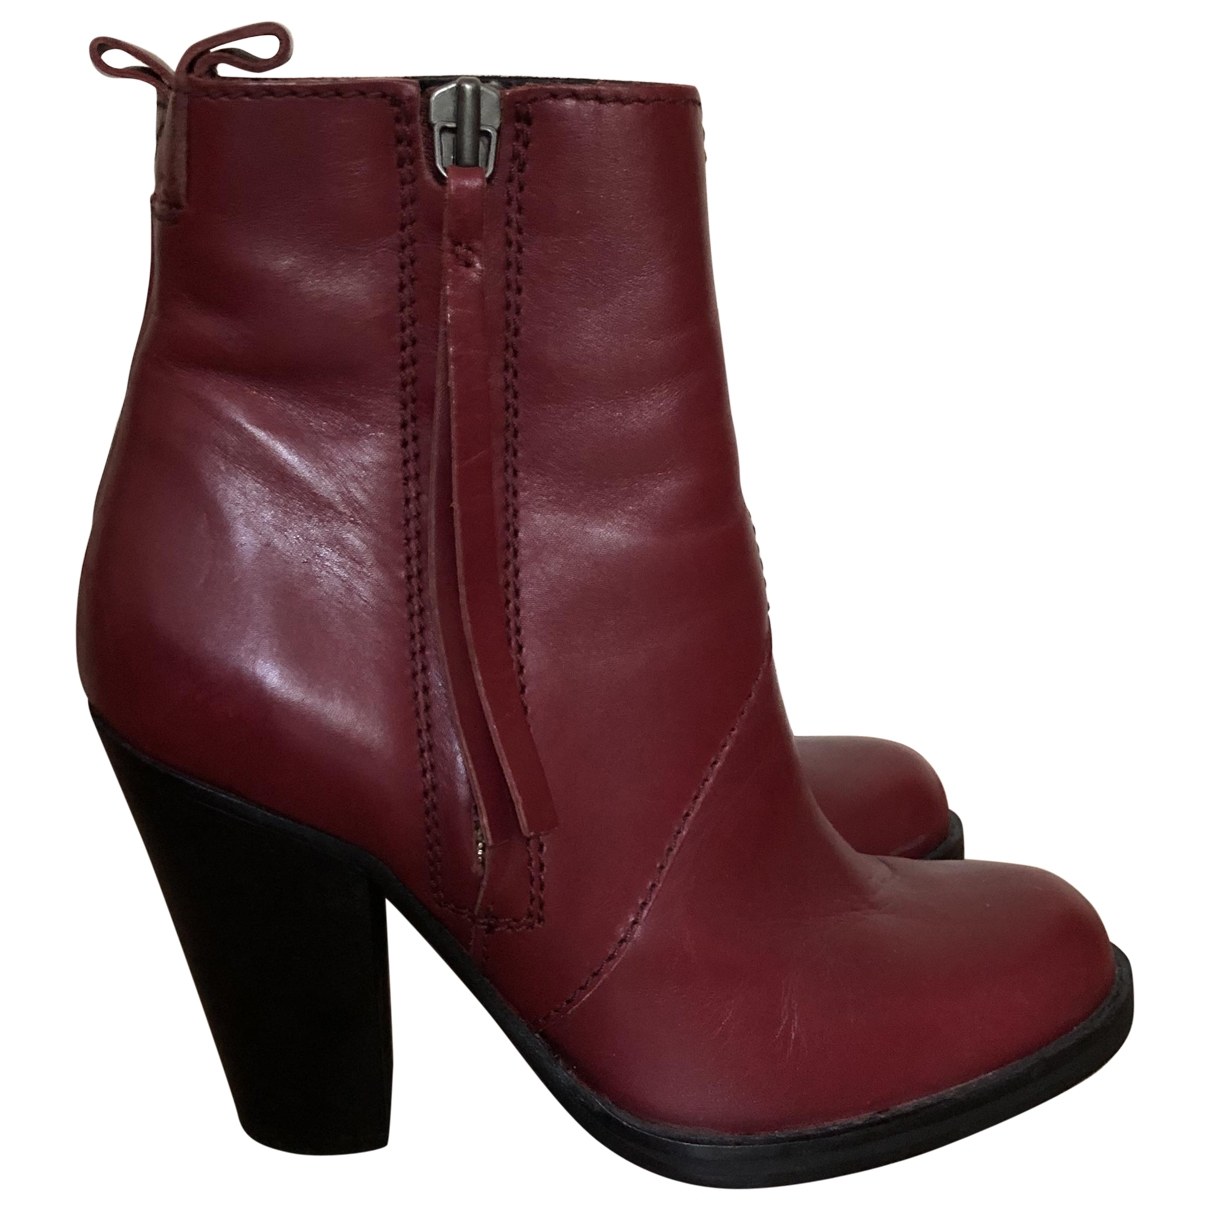 Acne Studios Pistol Burgundy Leather Ankle boots for Women 40 EU